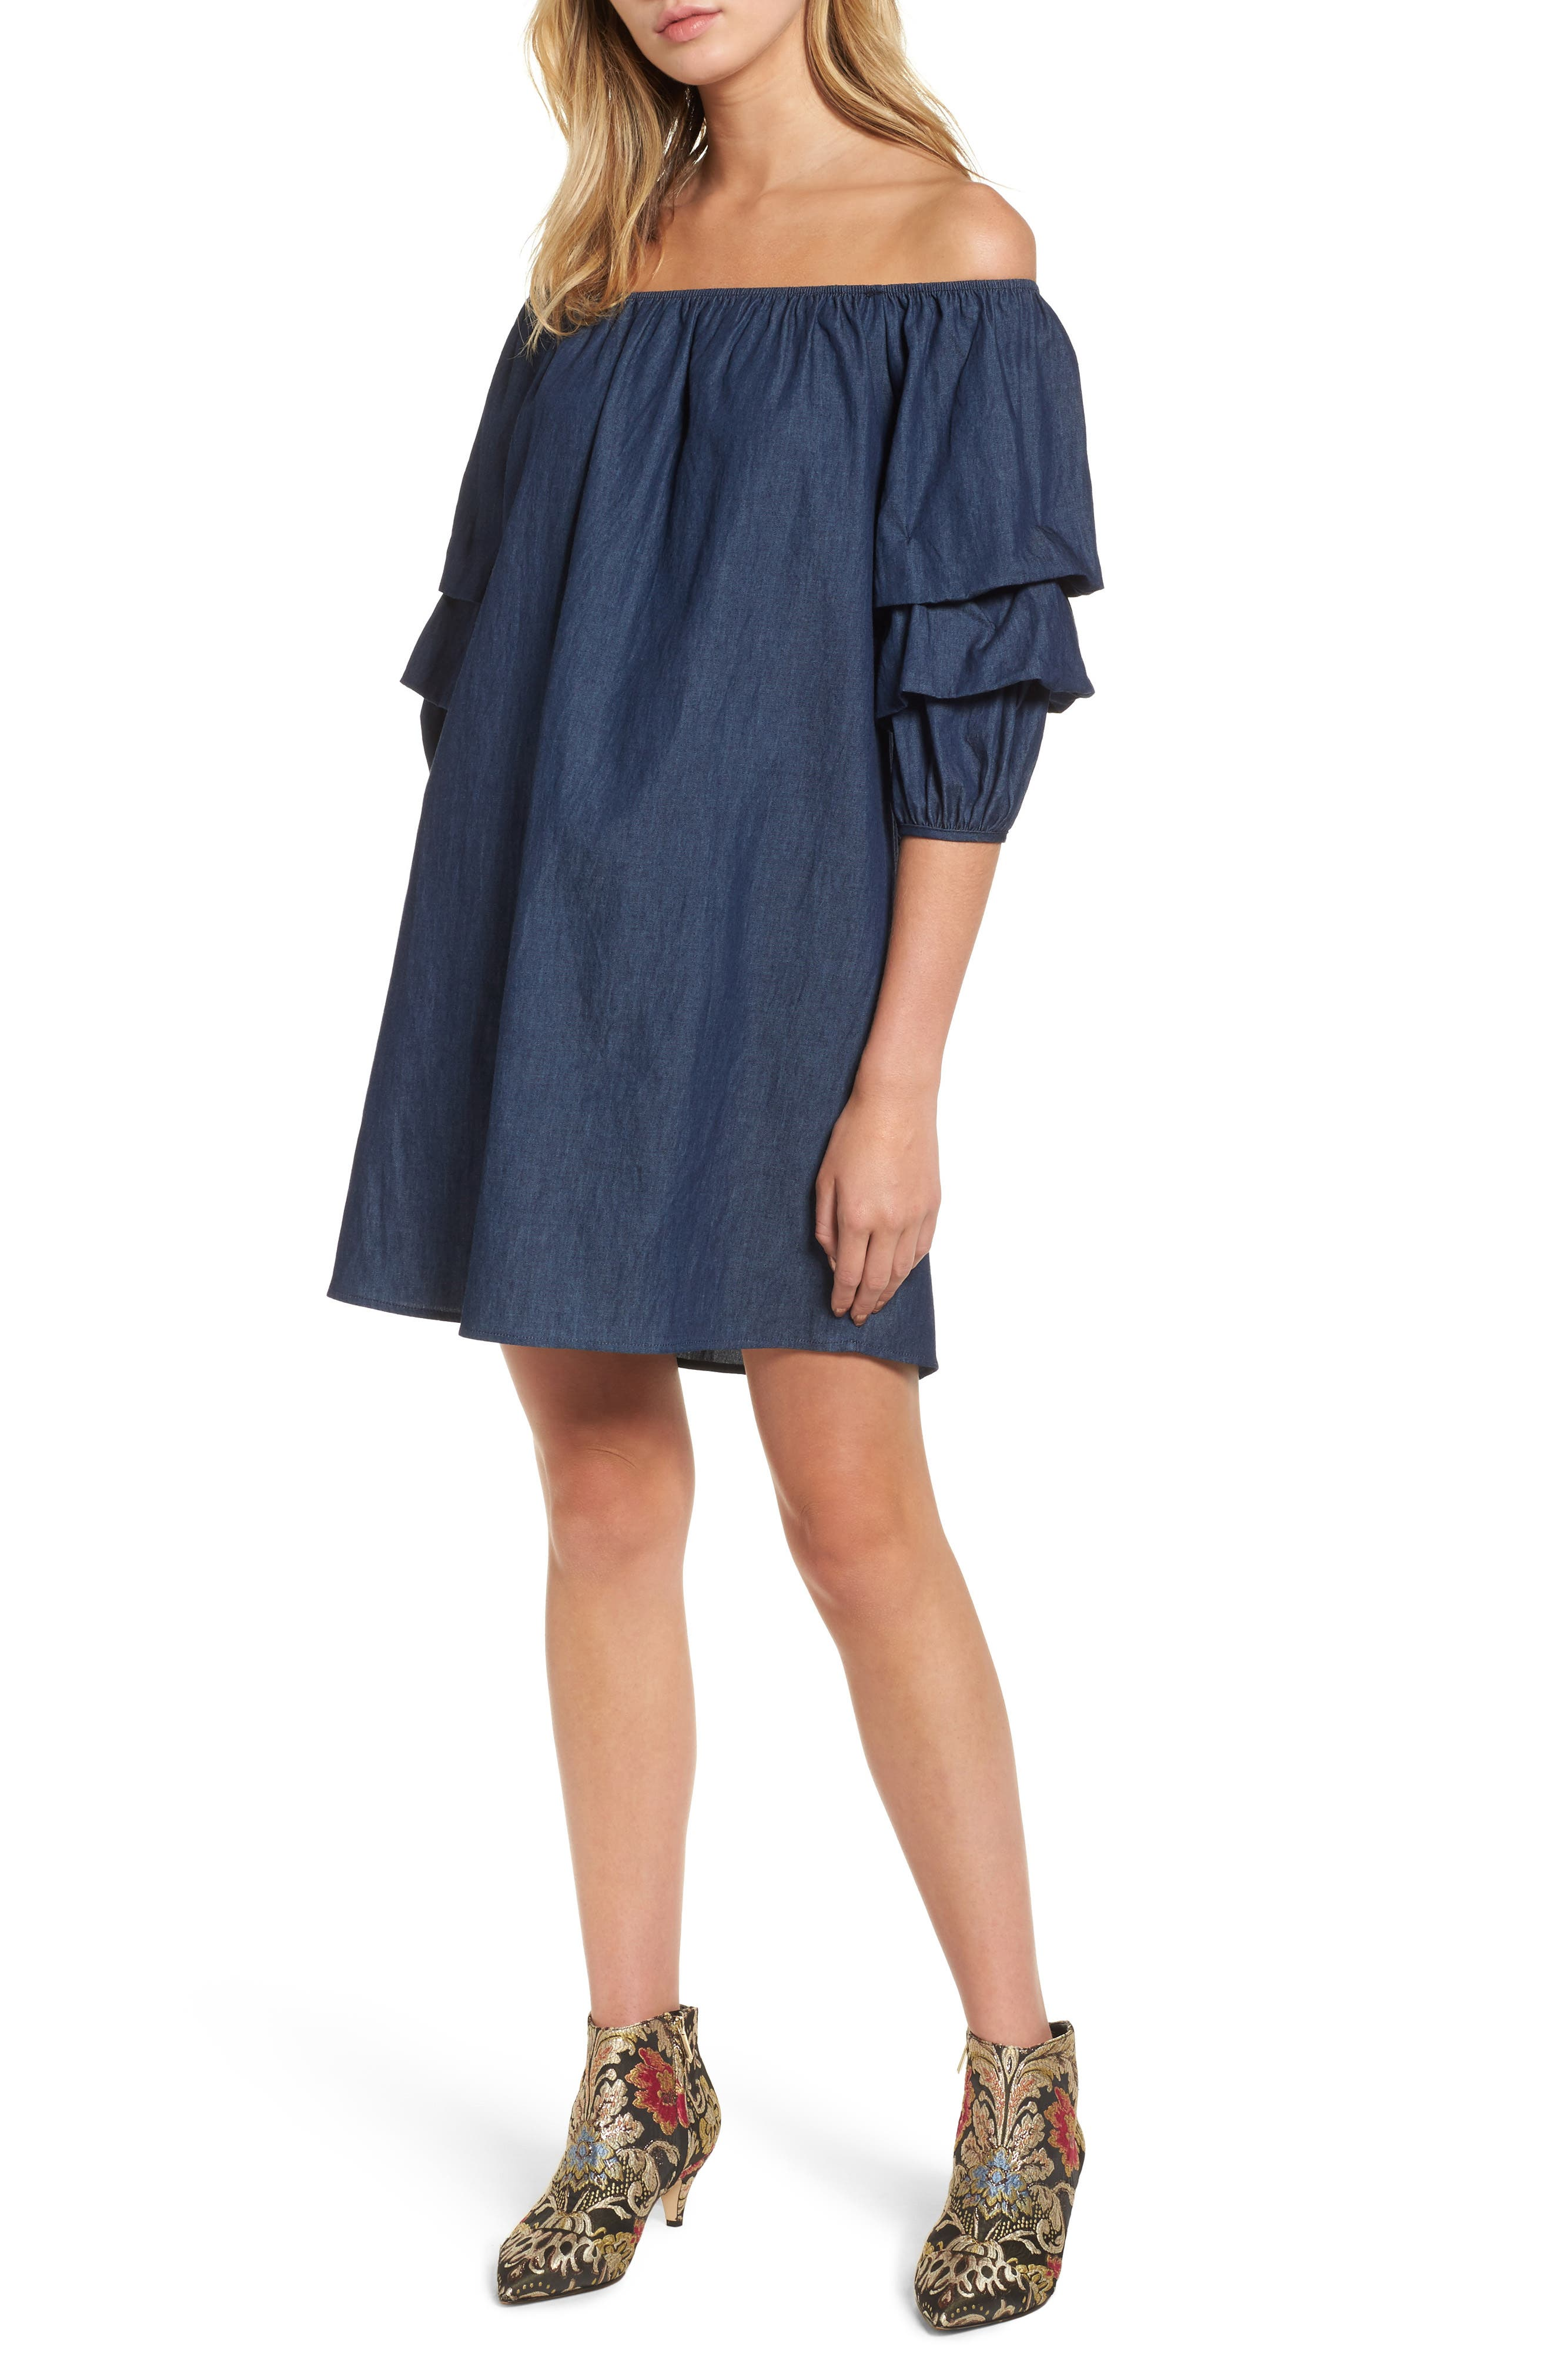 Off the Shoulder Denim Dress,                         Main,                         color, 401